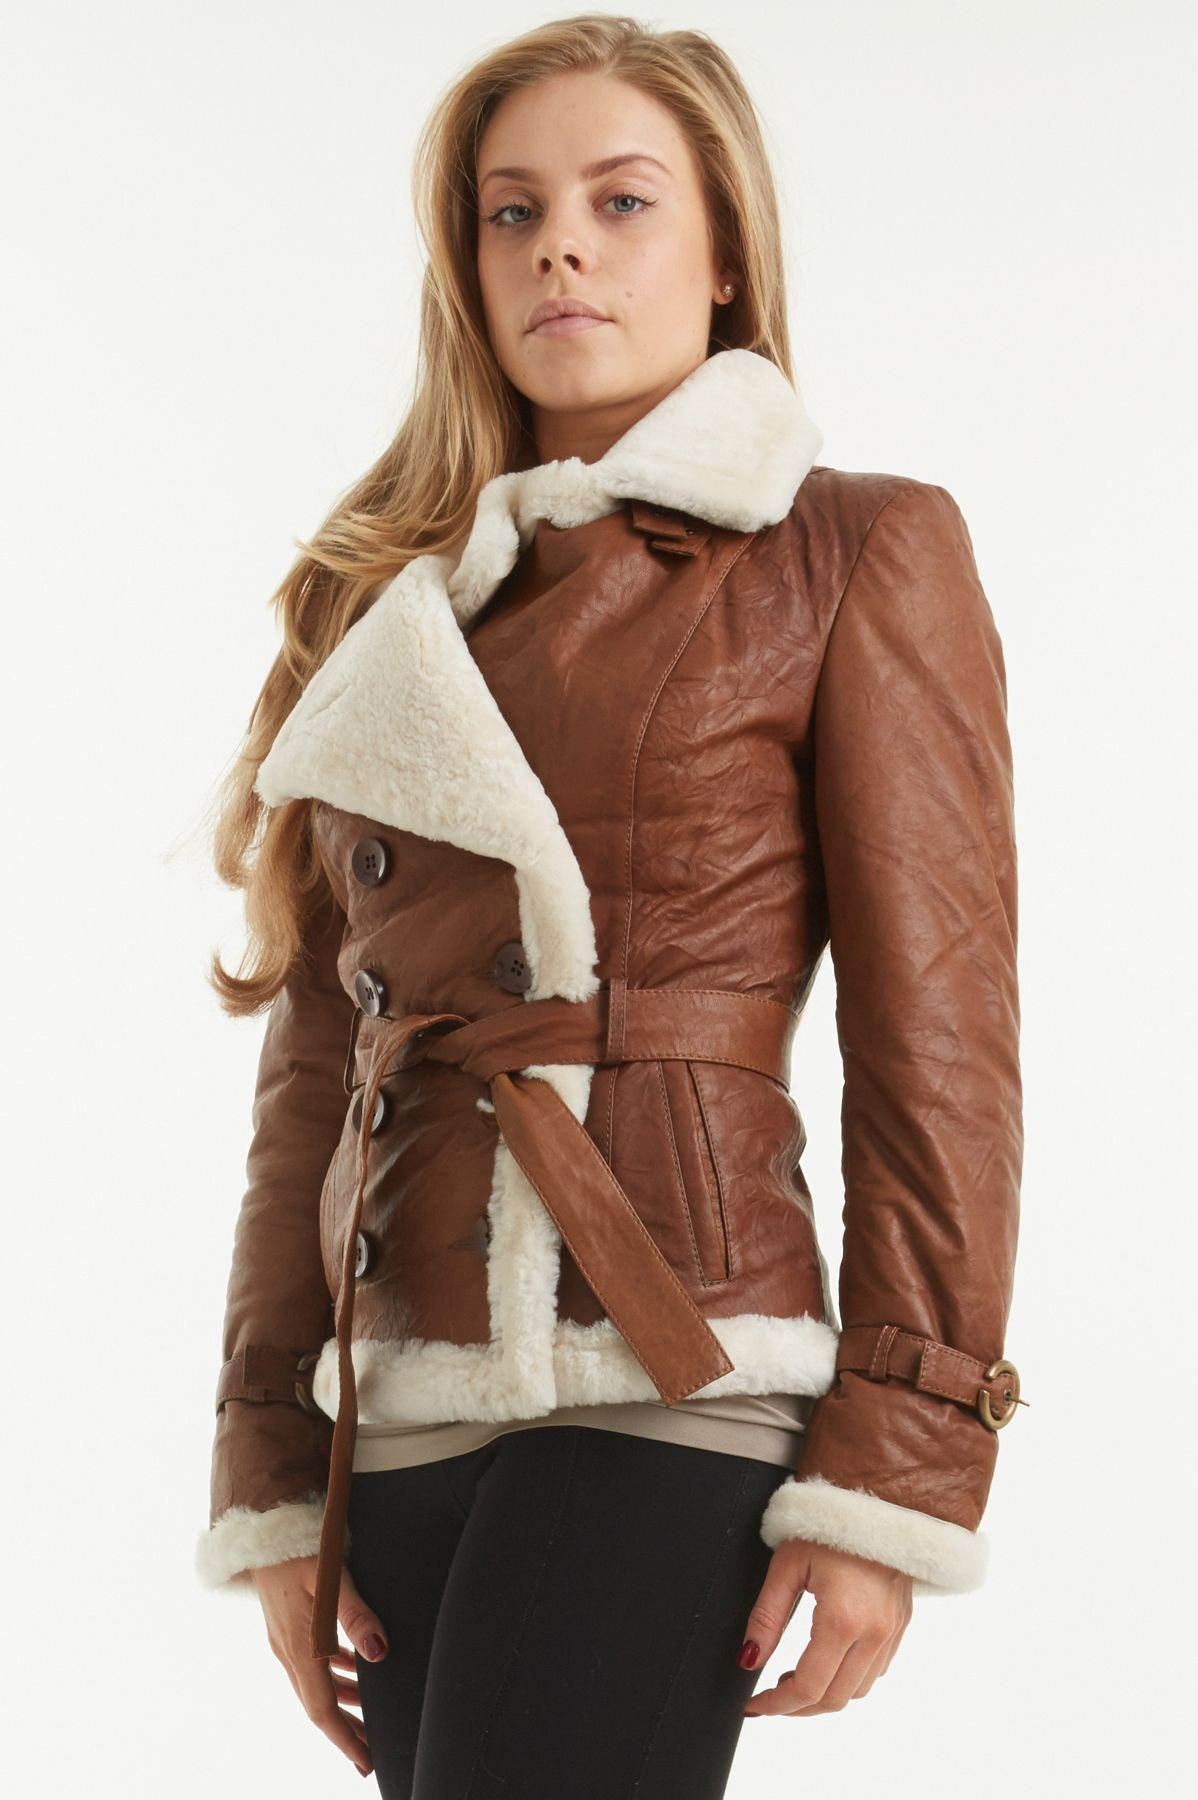 Women's Belted Brown Leather and Sheepskin Jacket Verona | Brown ...